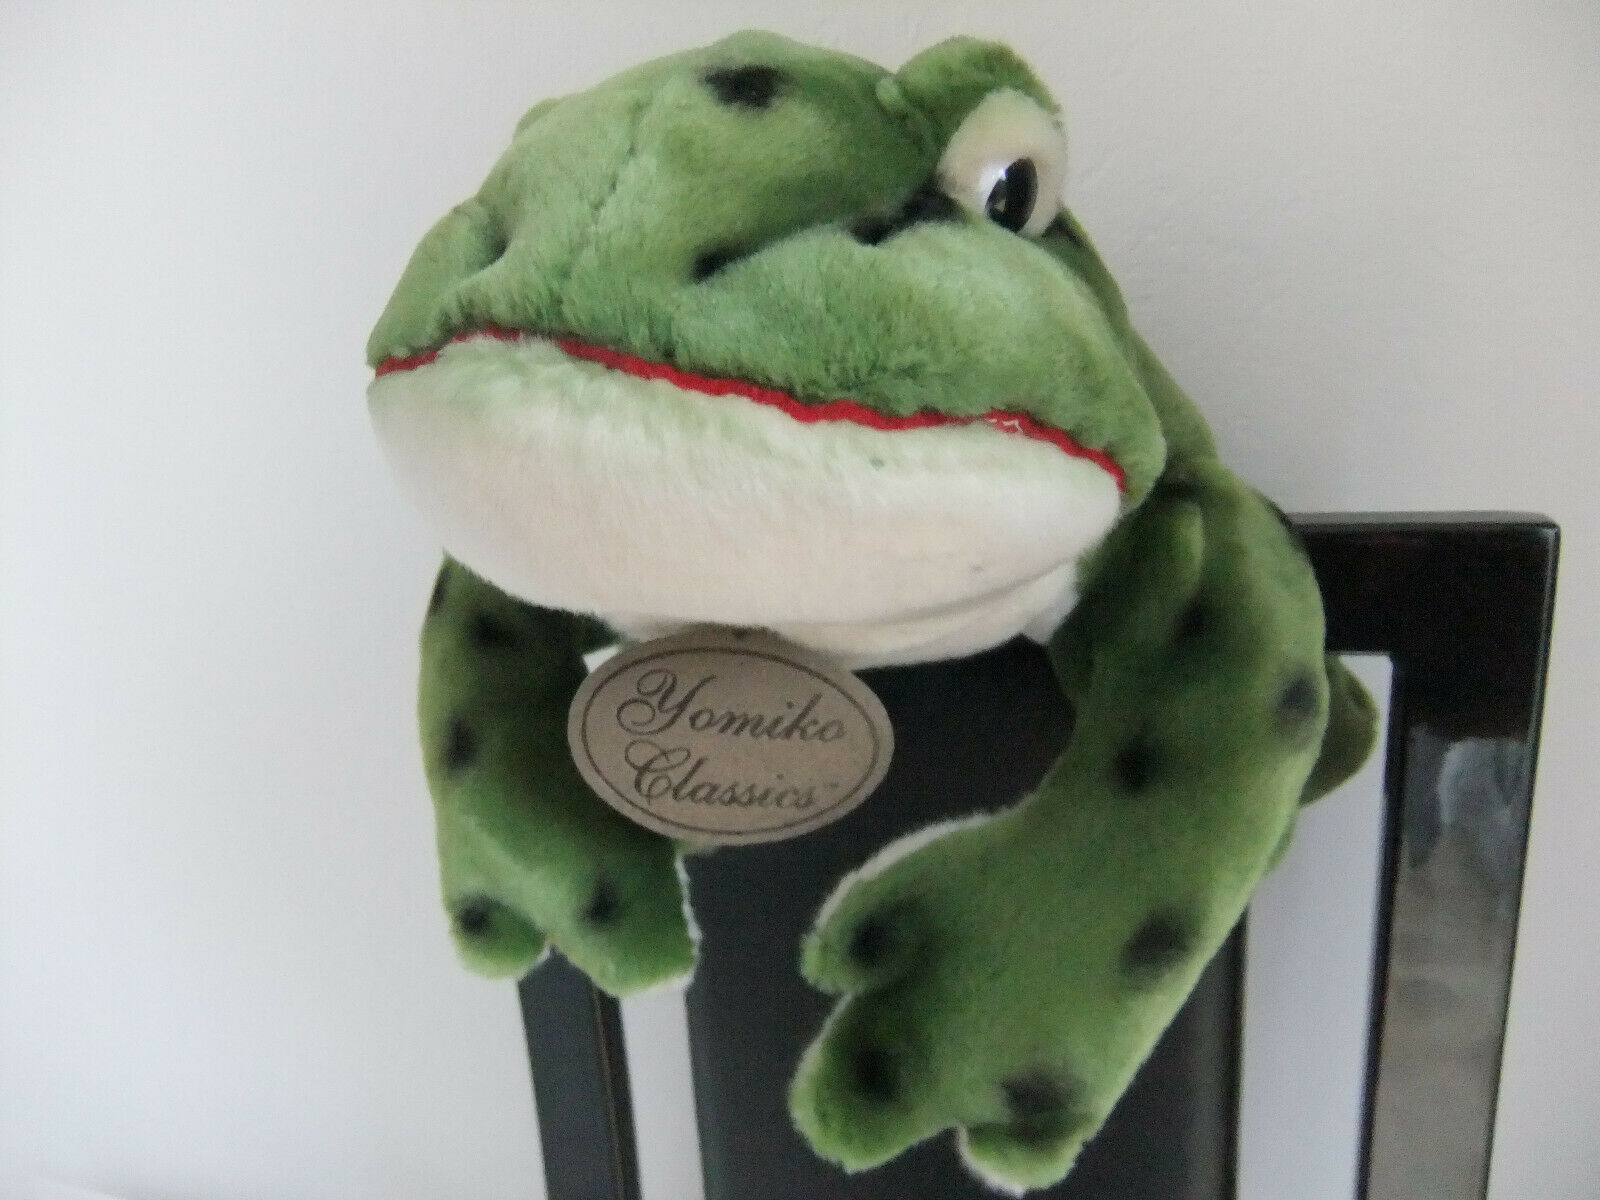 15  YOMIKO CLASSICS GREEN FROG RUSS BULL BULLFROG SOFT CUDDLY TOY NEXT EASTER